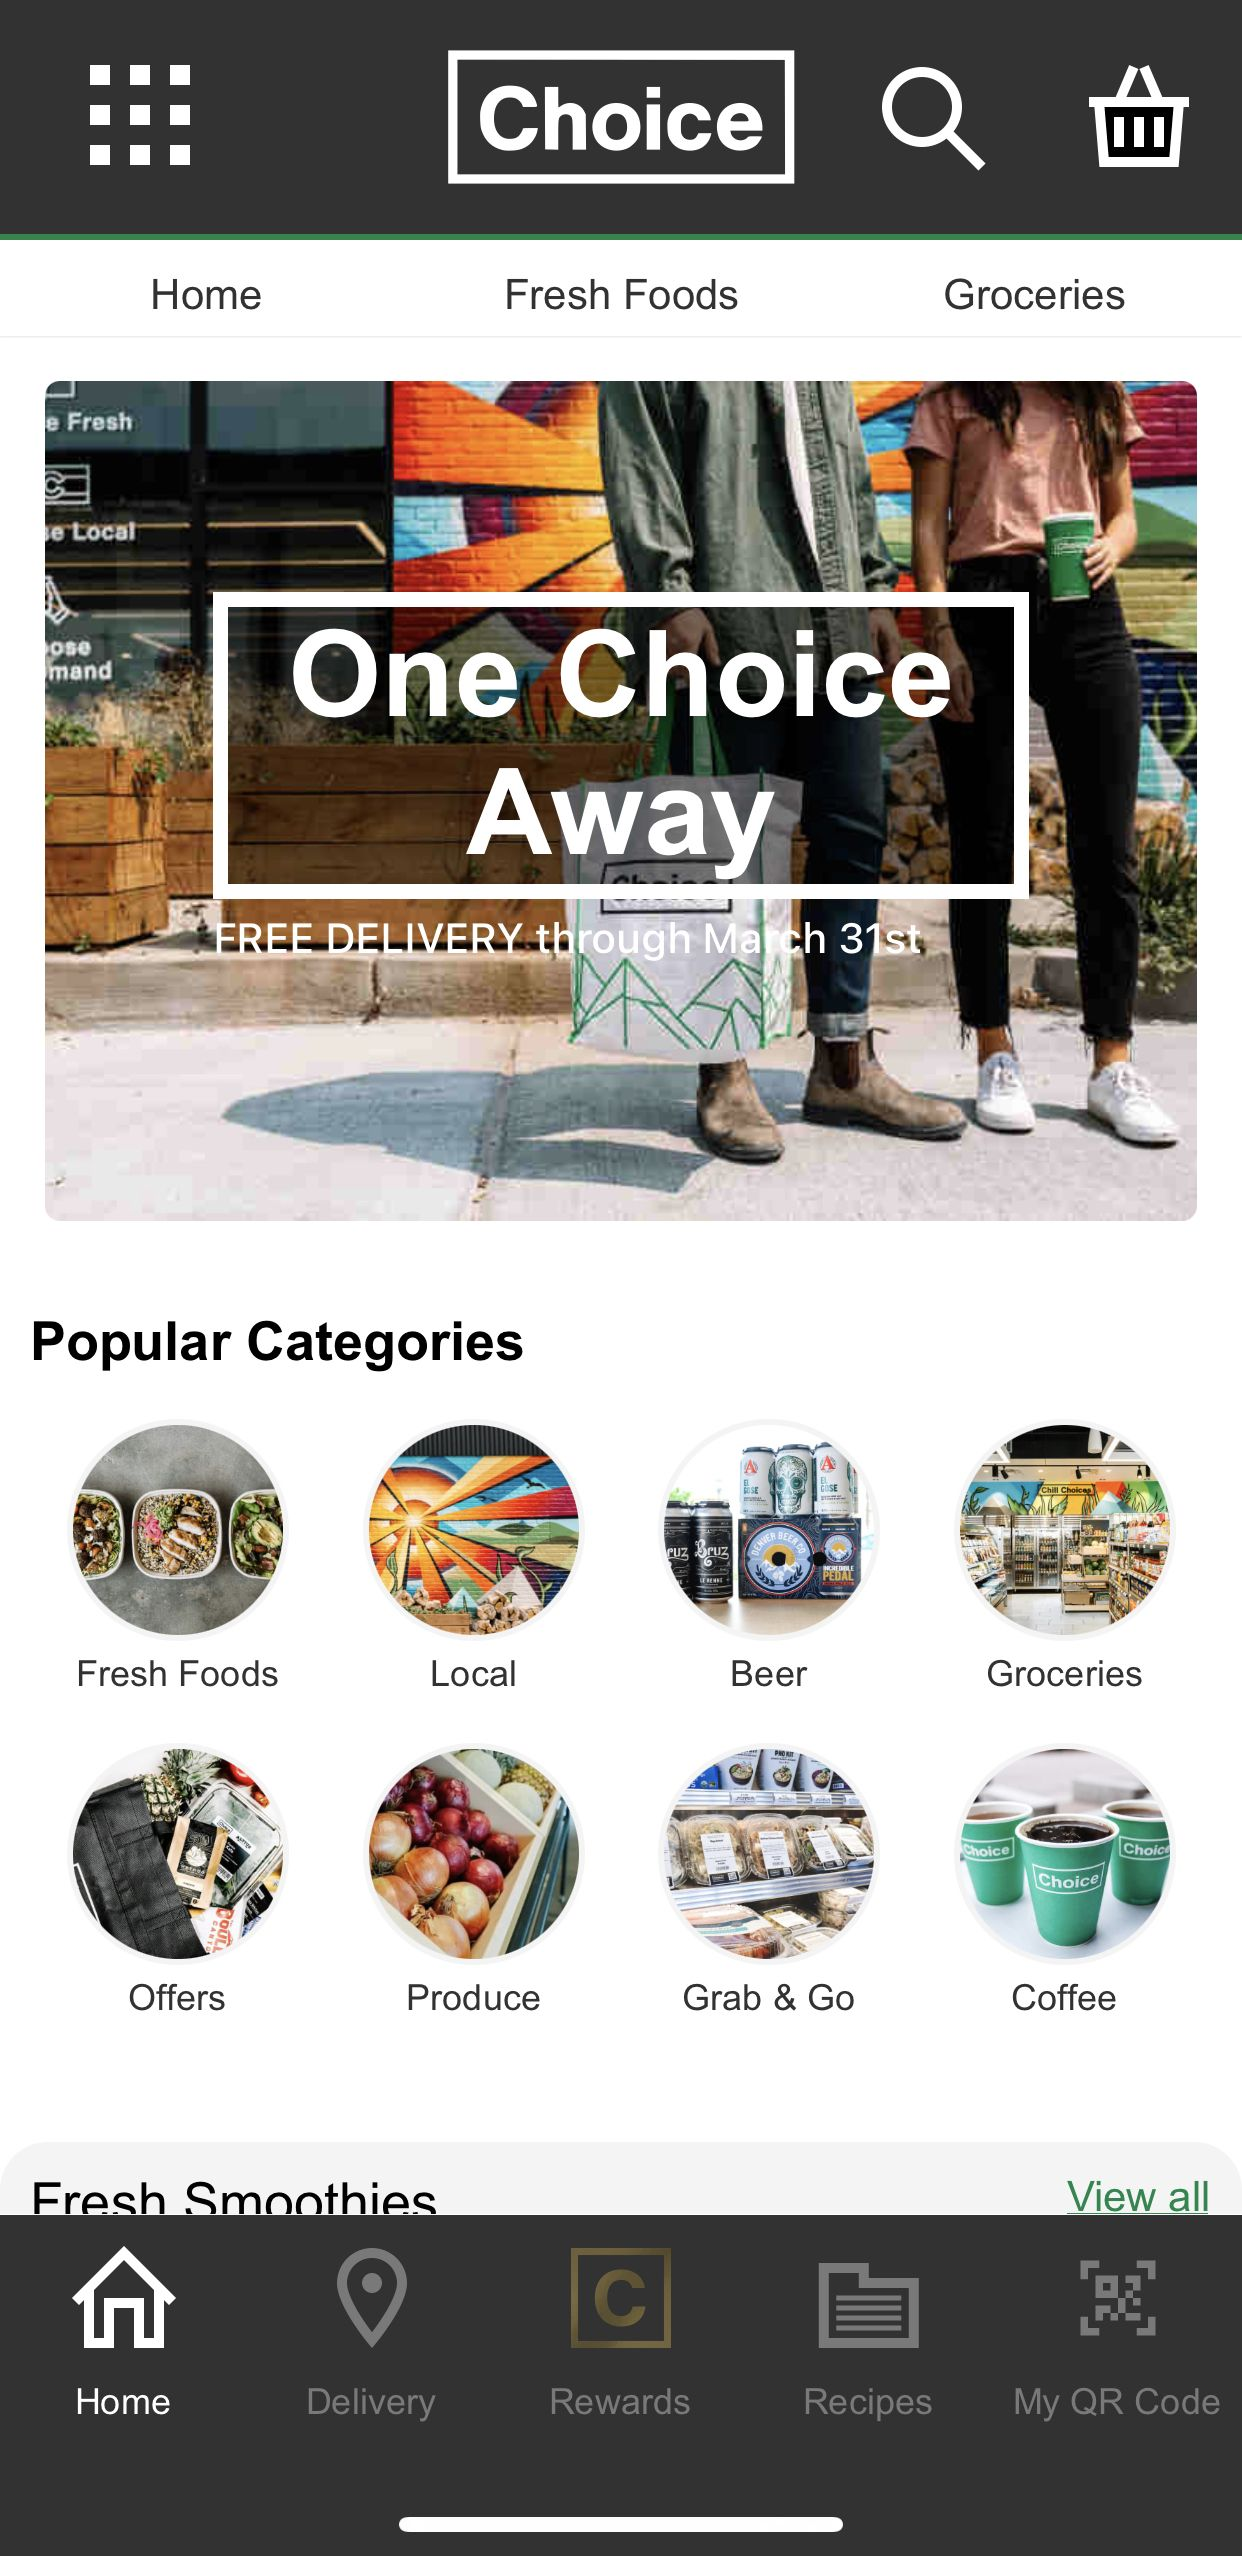 Choice Market to Open One of the Largest Frictionless Markets in the World